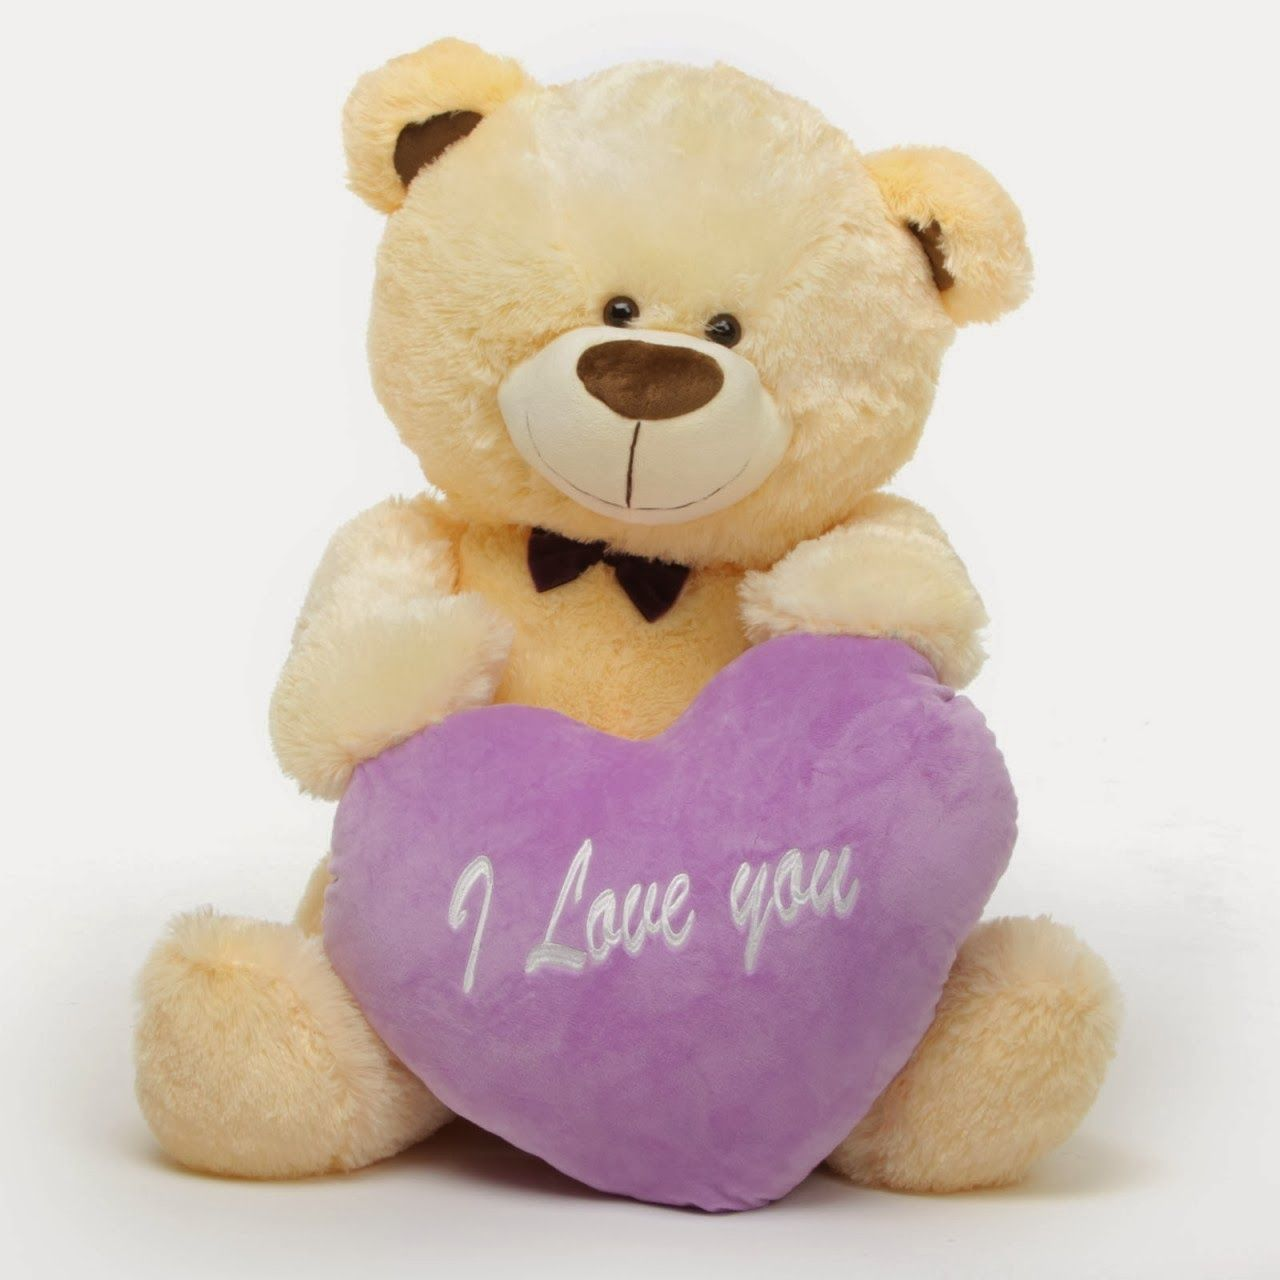 Giant Teddy Brand Life Size Valentineu0027s Day Teddy Bear Gifts I Love You  Hearts Personalized Messages